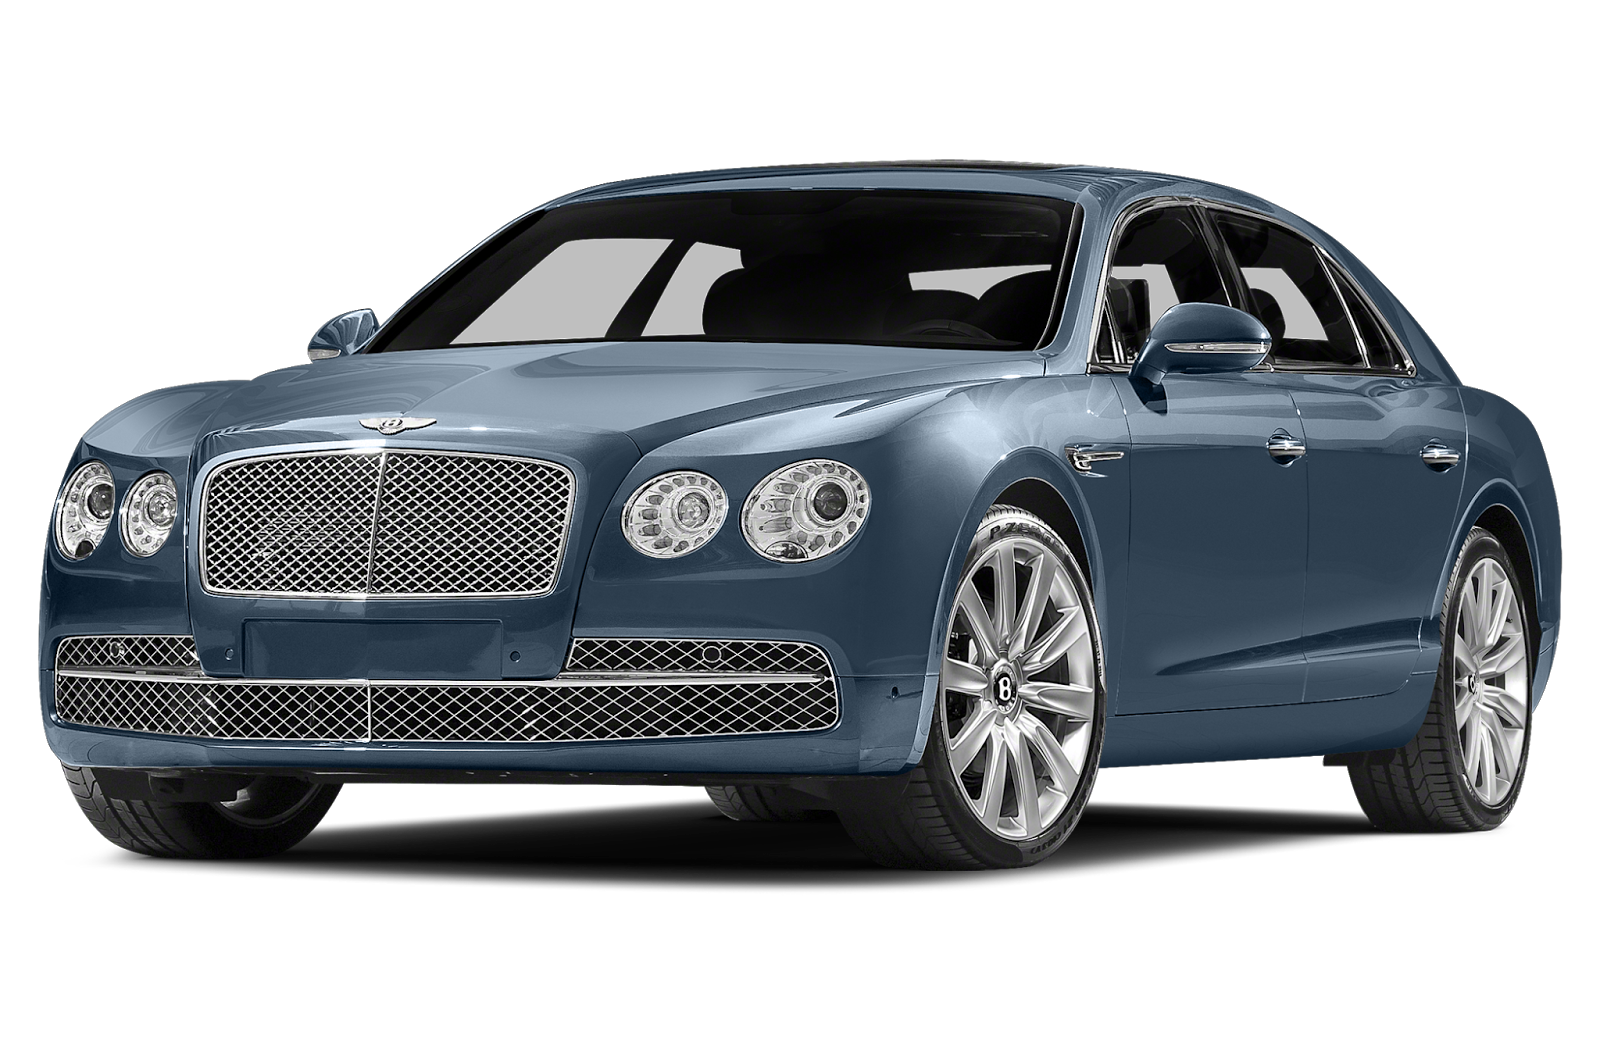 2015 Bentley Flying Spur High Resolution Pictures